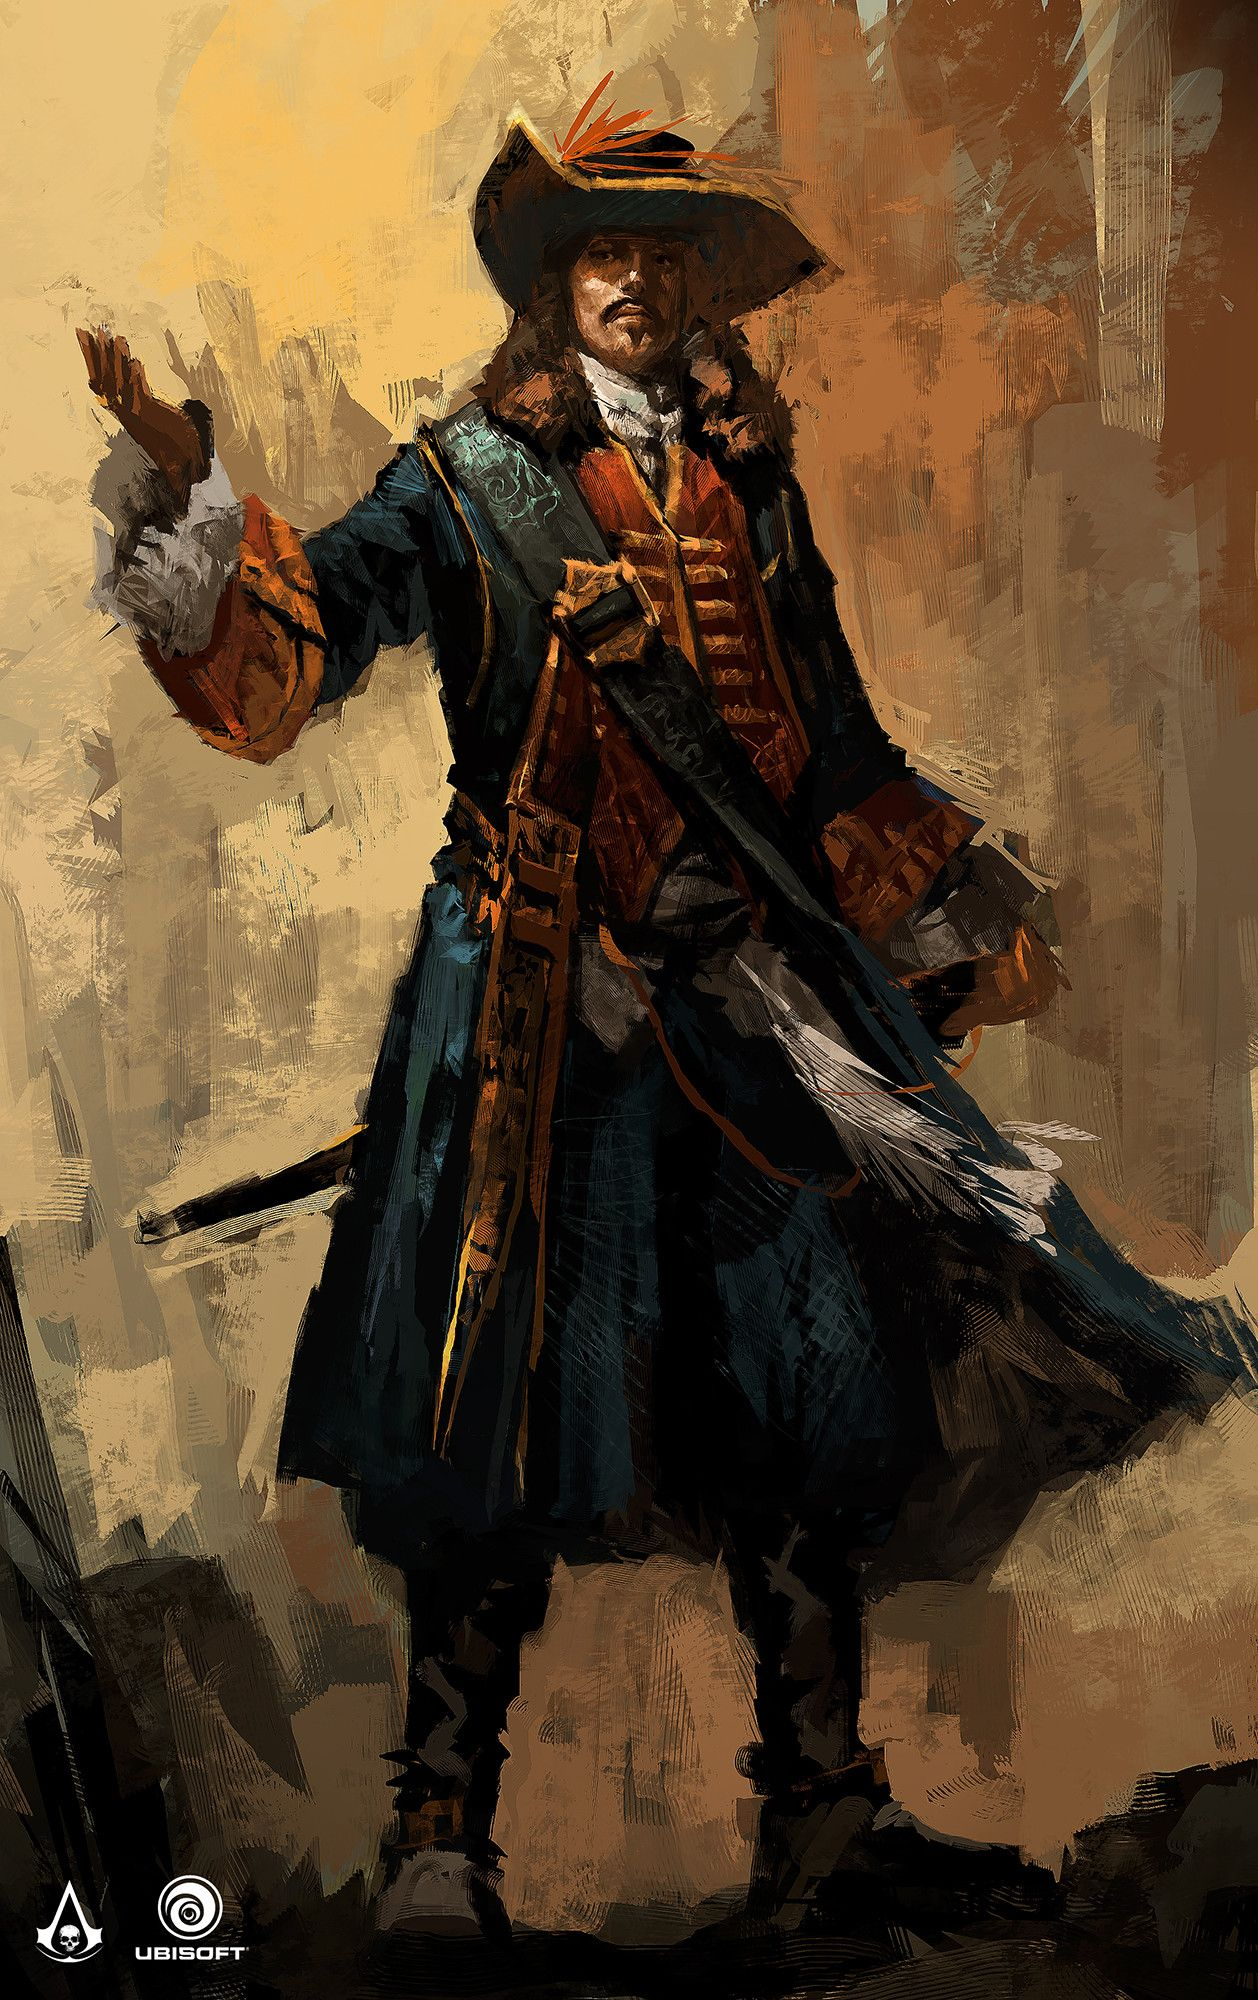 Assassin S Creed Iv Black Flag Characters Concept Teo Yong Jin Assassins Creed Black Flag Pirate Art Character Concept